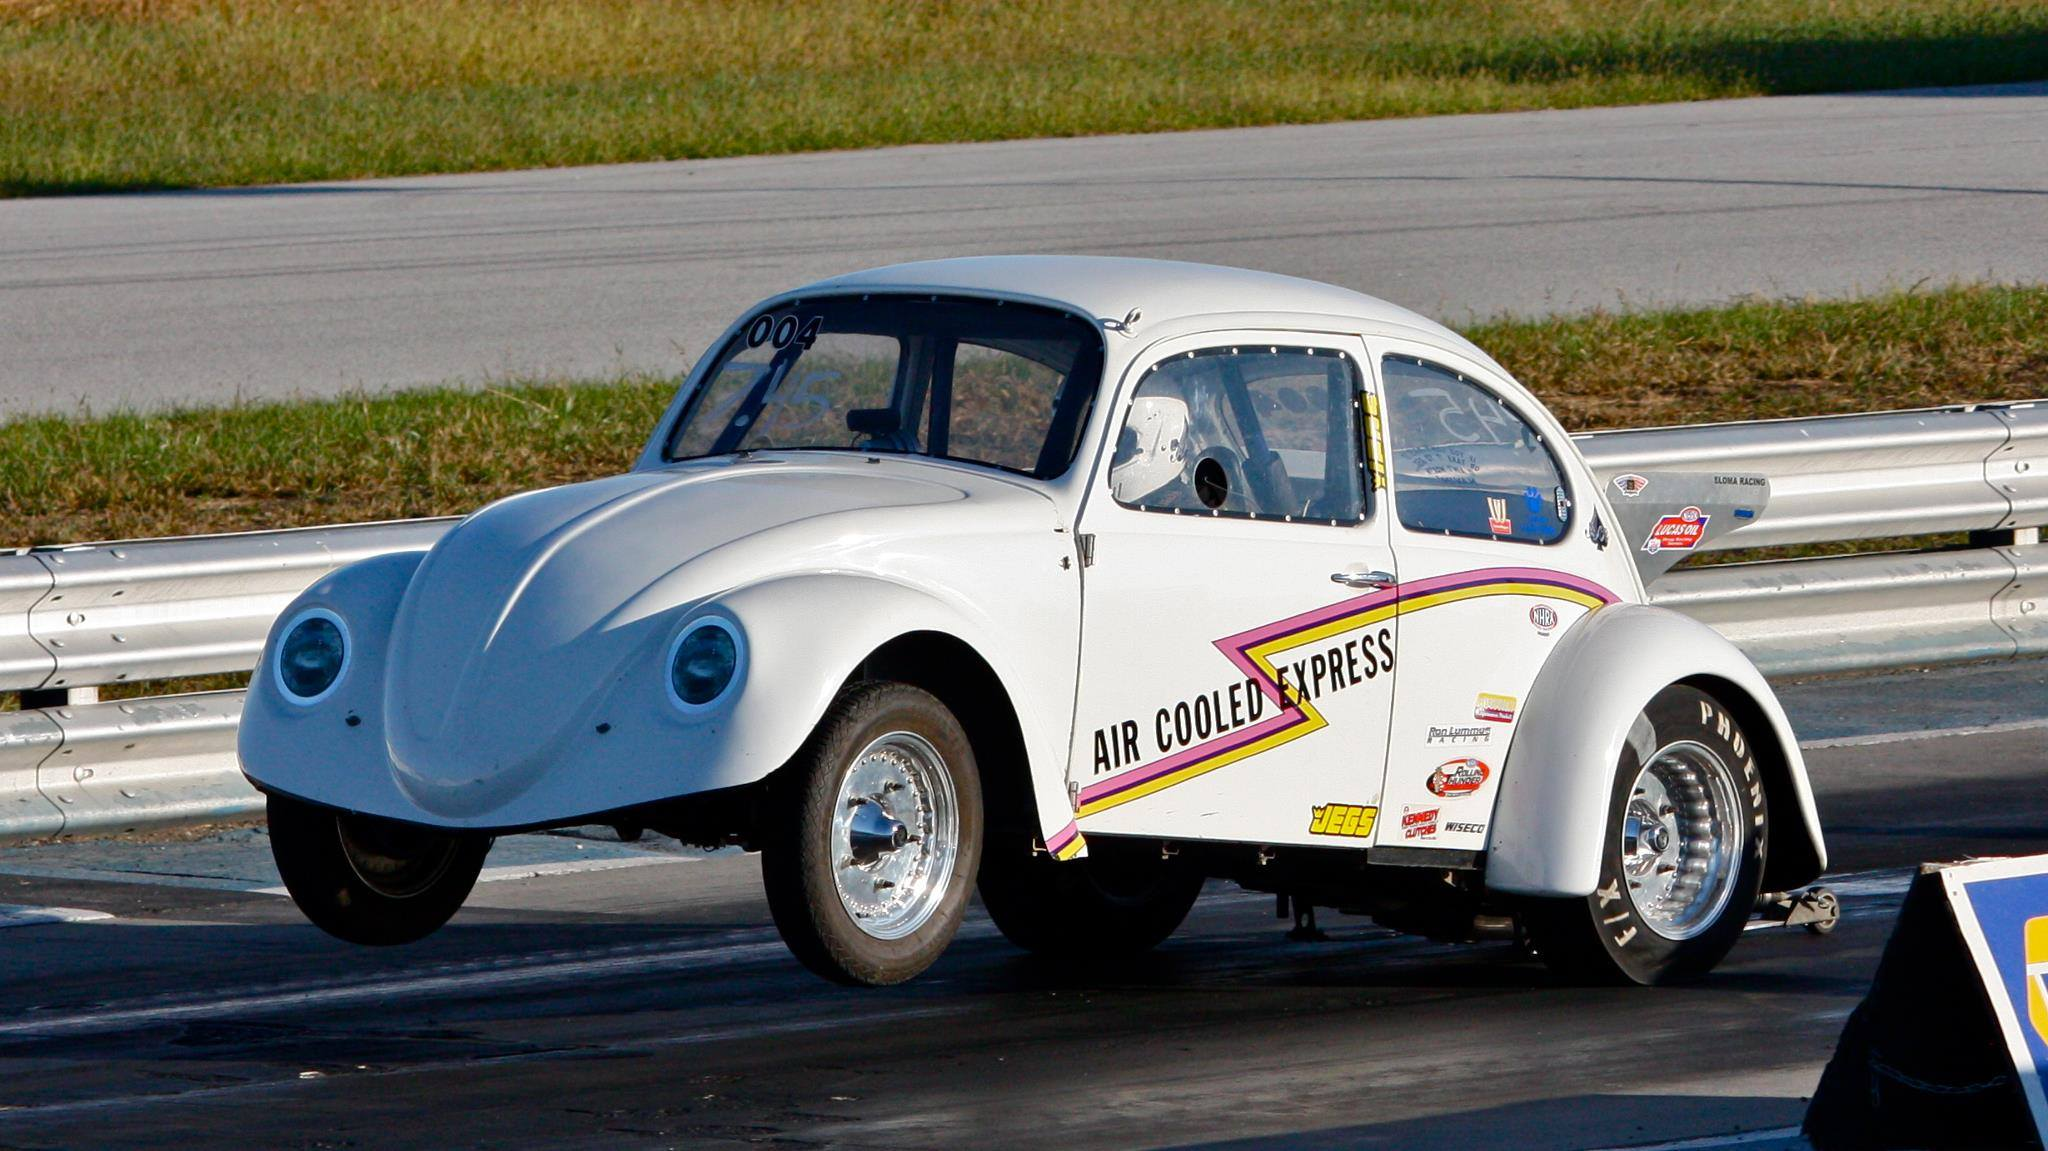 About Us | Air Cooled Express